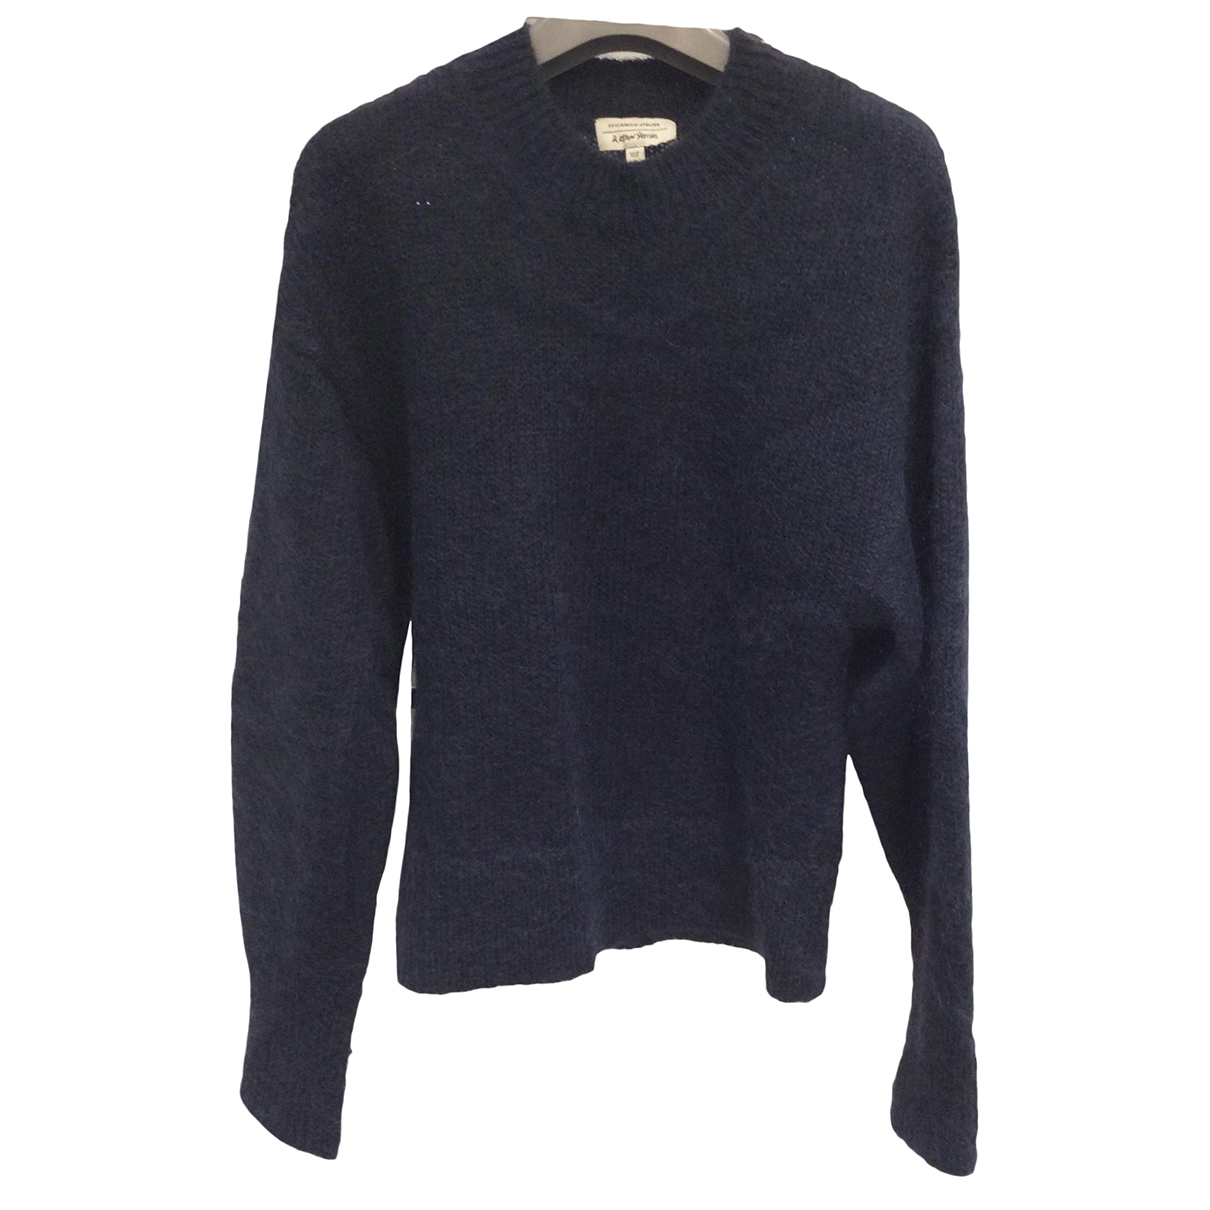 & Stories N Navy Wool Knitwear for Women XS International